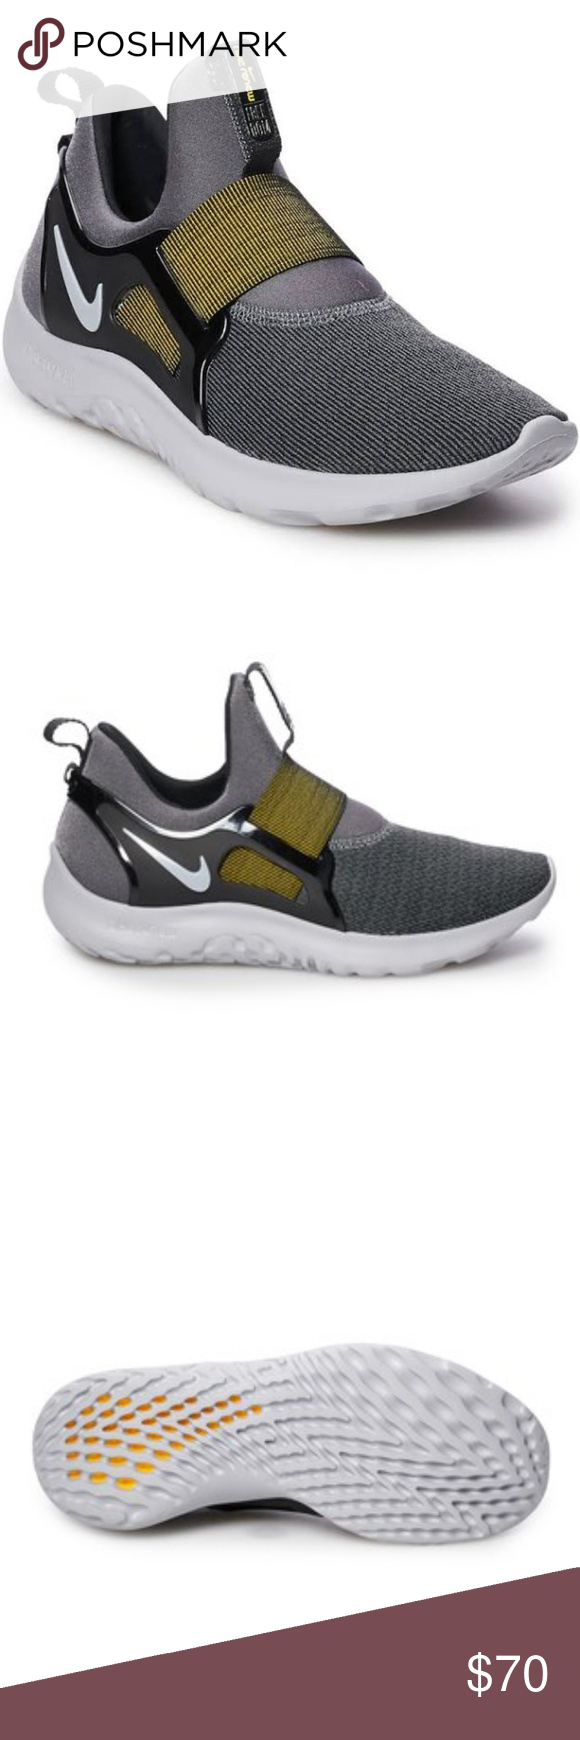 4a77e19a2a17 Nike Renew Freedom Nike-Freedom Slip-On Sneaker - Women s Refresh your  athleisure collection